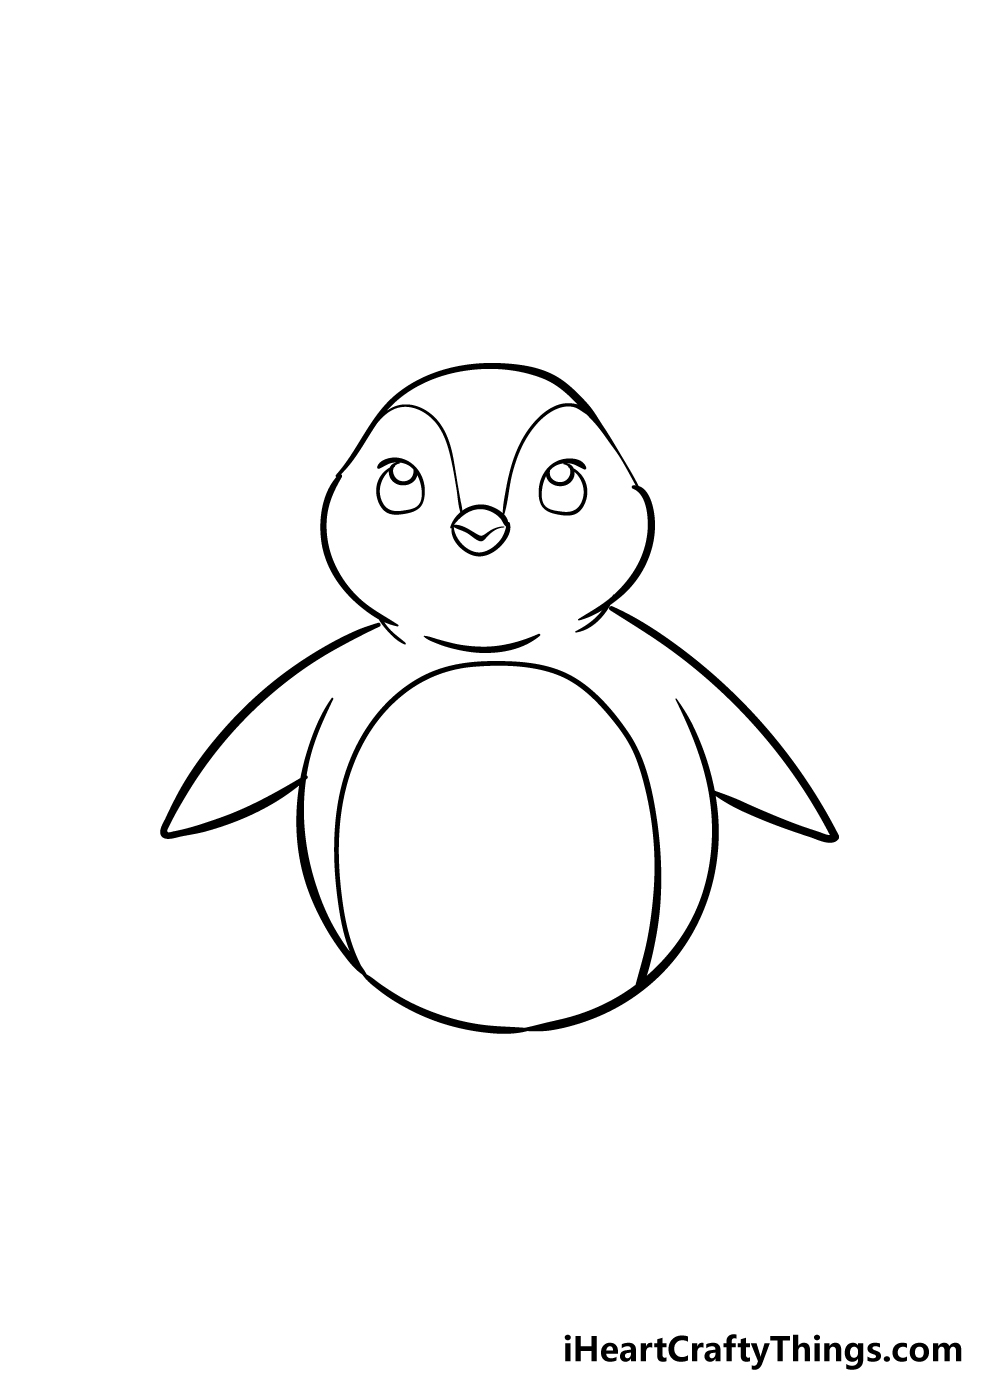 penguin drawing step 4